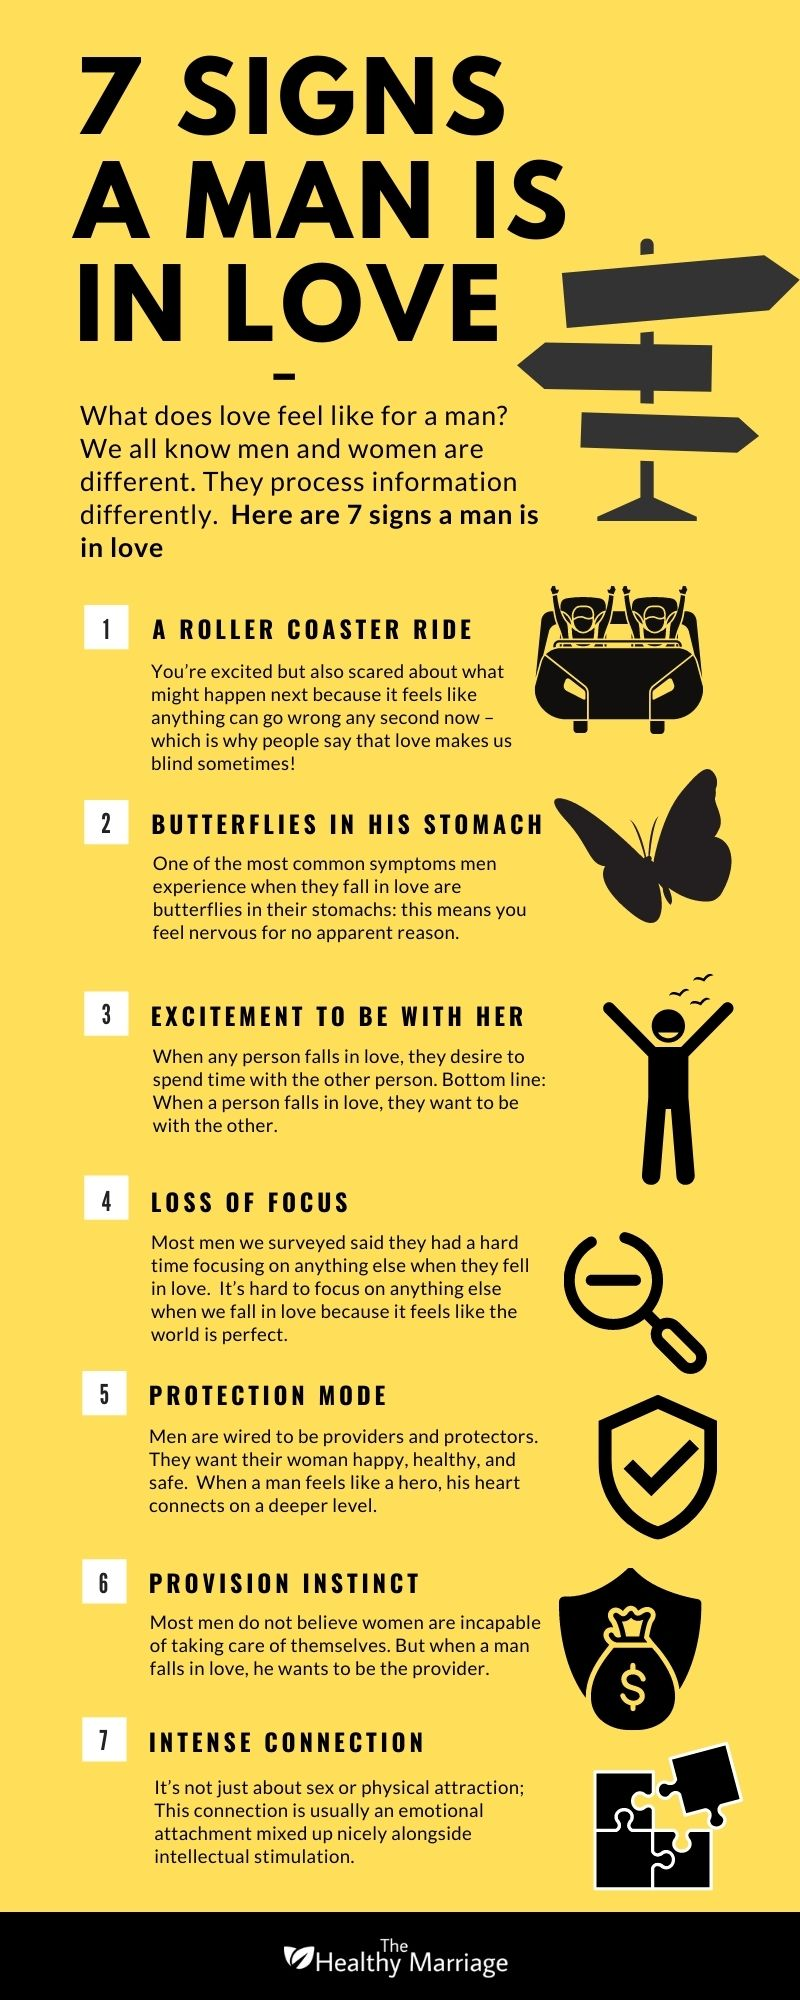 7 Signs A Man Is in love infographic